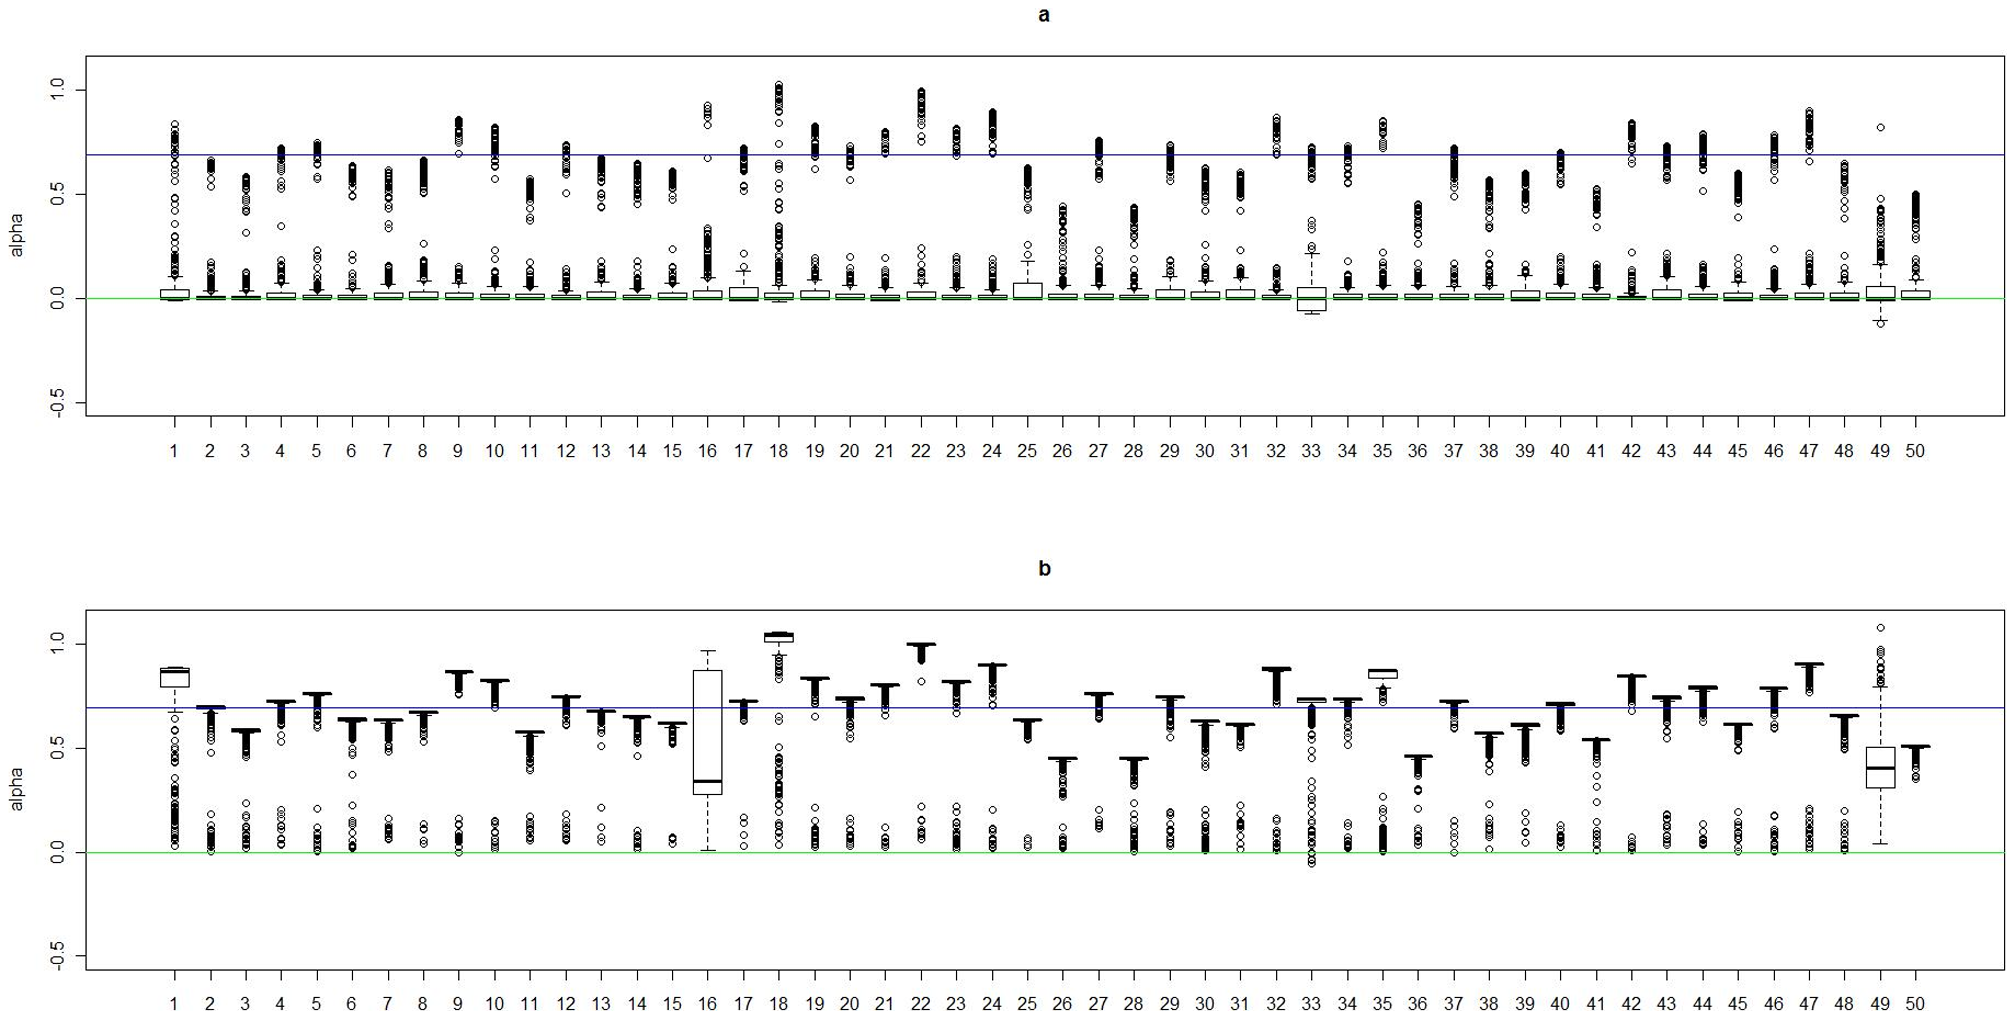 Boxplots of the posterior medians of the intercept () for subjects within each true cluster from each of 50 datasets simulated under the model .